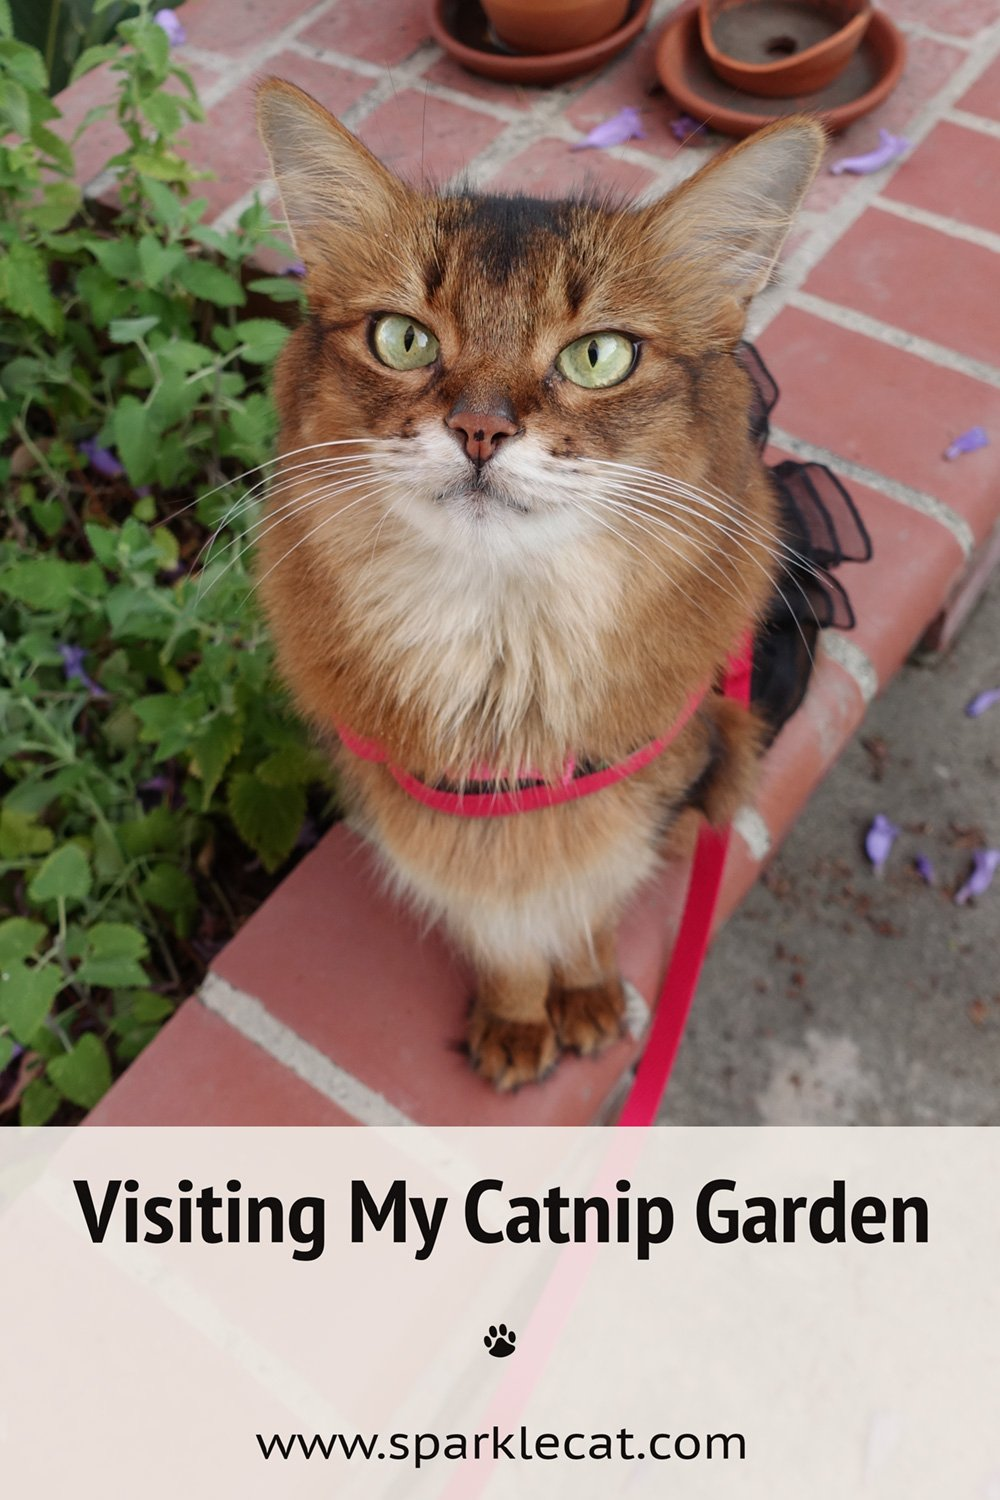 The Latest Look at My Catnip Garden(s)